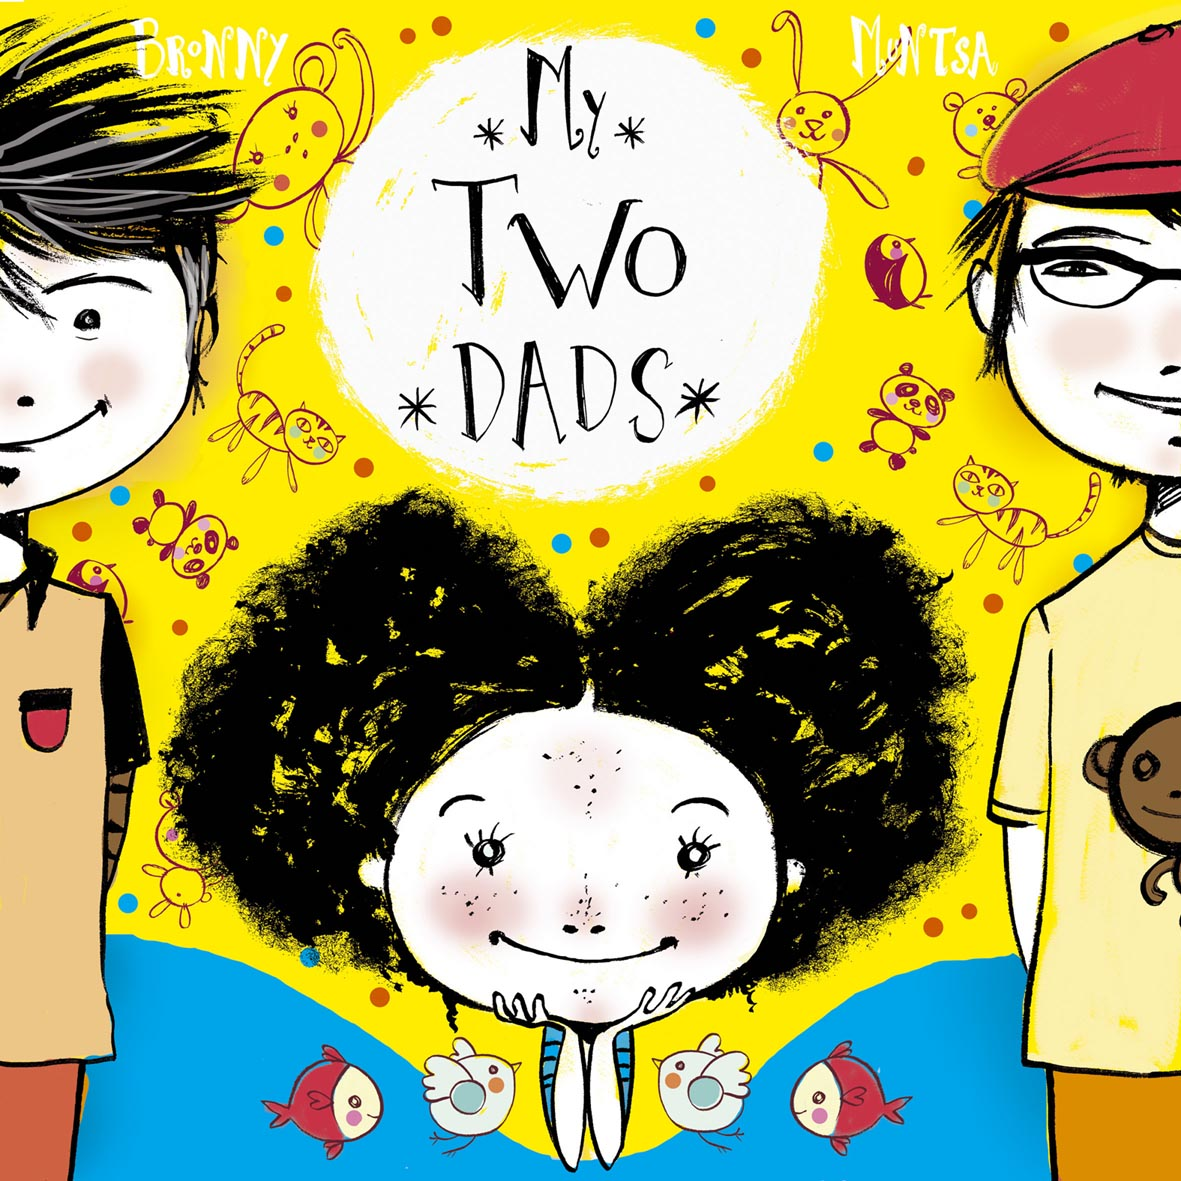 My Two Dads childrens' book cover by Bronny and Muntsa